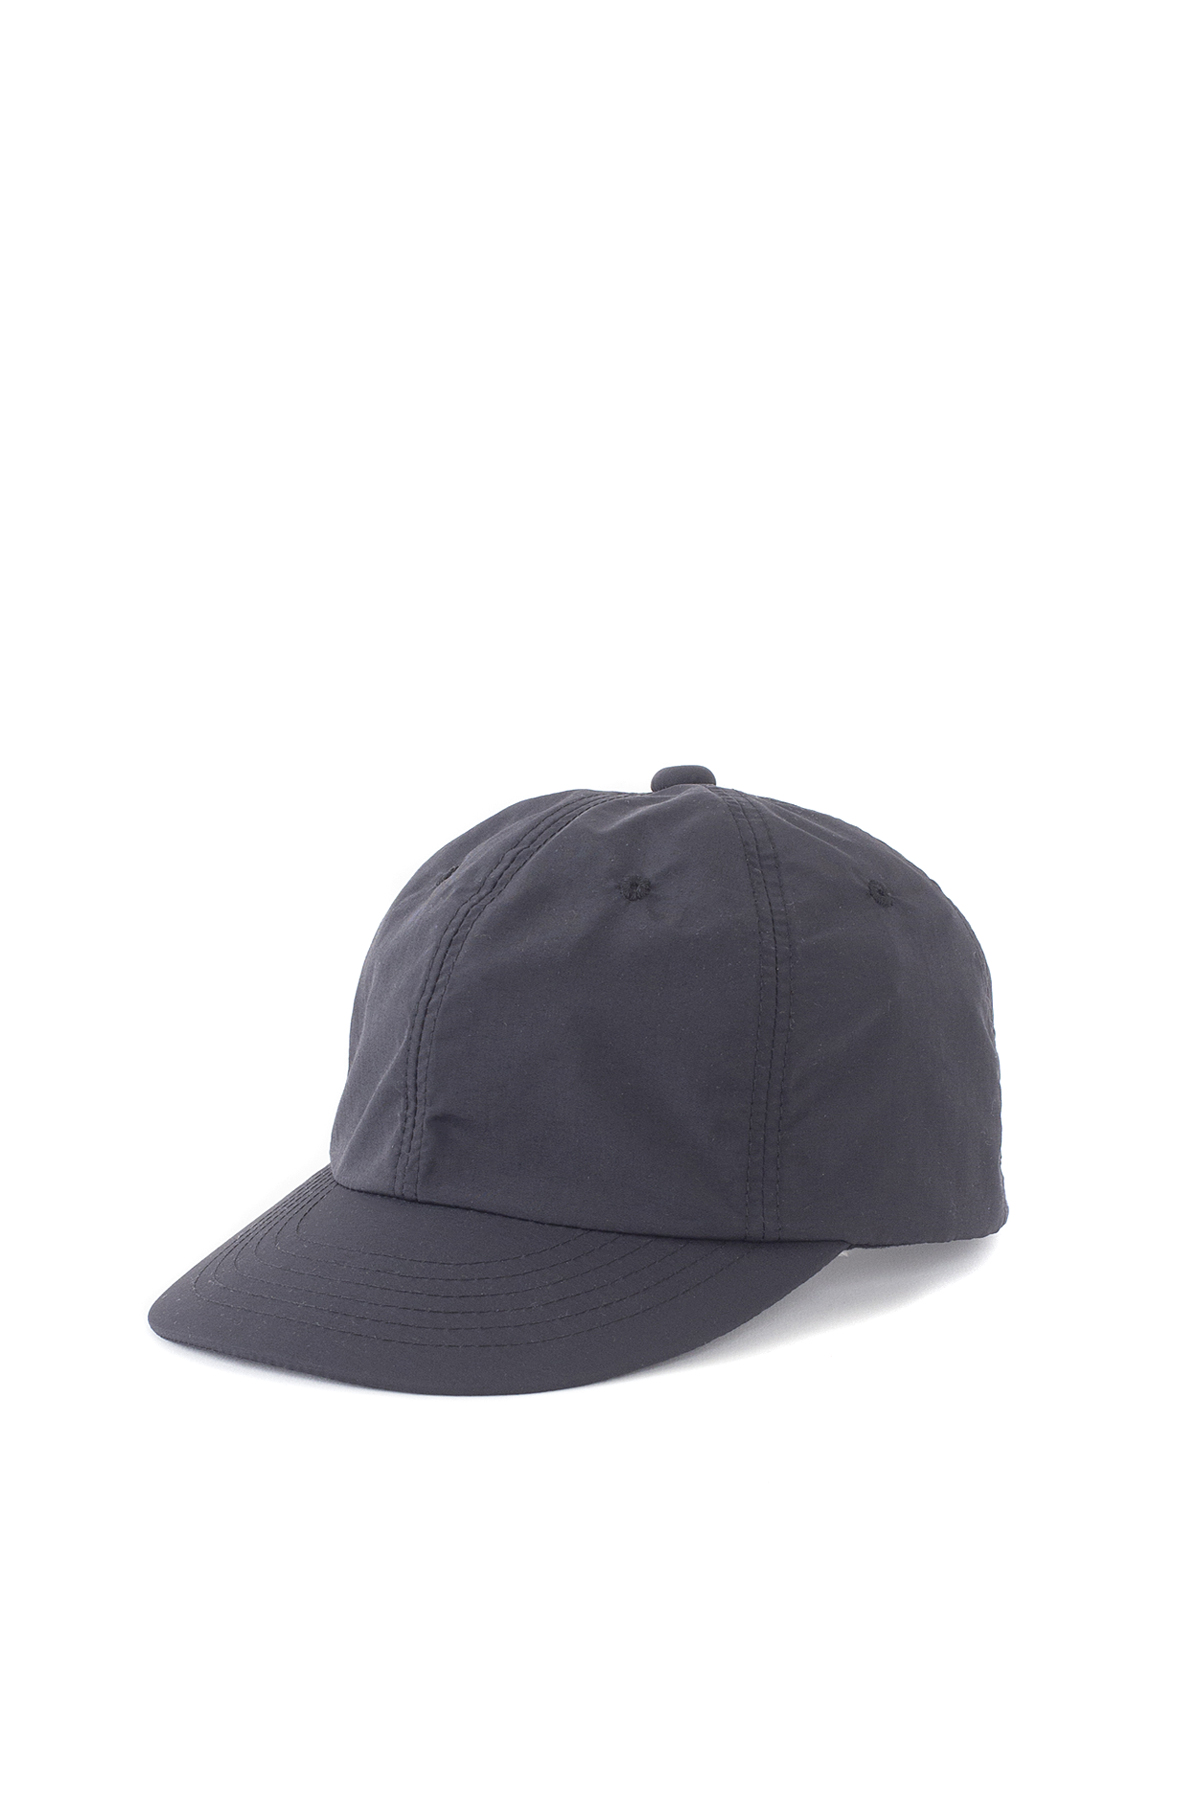 forumwear : Supplex Ball Cap (Black)